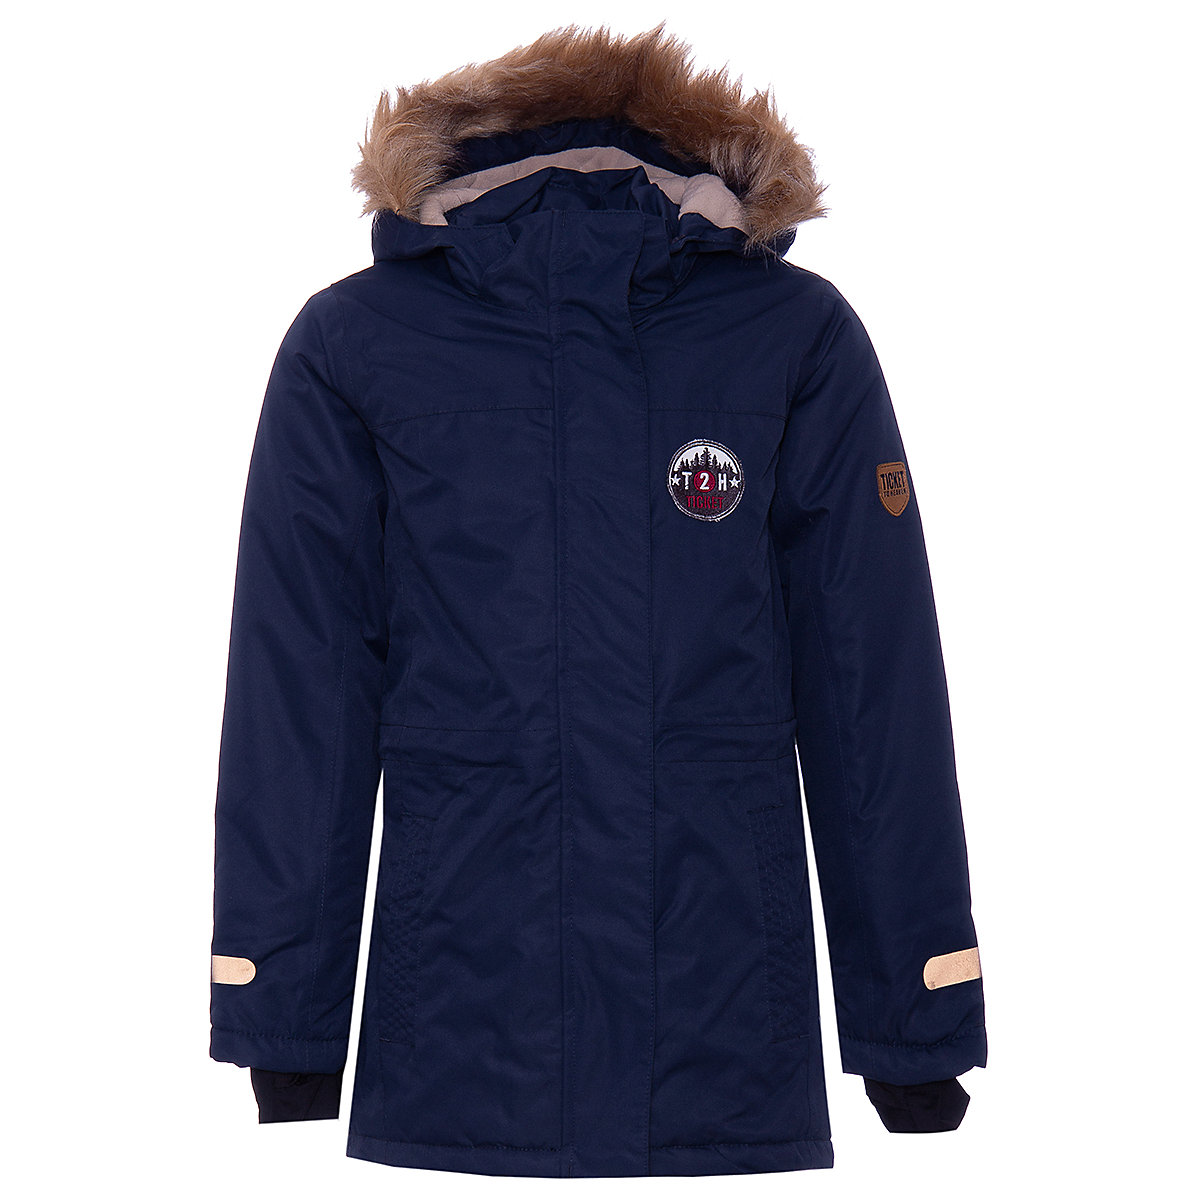 Jackets & Coats TICKET TO HEAVEN for girls 8305475 Jacket Coat Denim Cardigan Warm Children clothes Kids icebear 2018 new men s winter jacket warm detachable hat male short coat fashion casual apparel man brand clothing mwd18813d